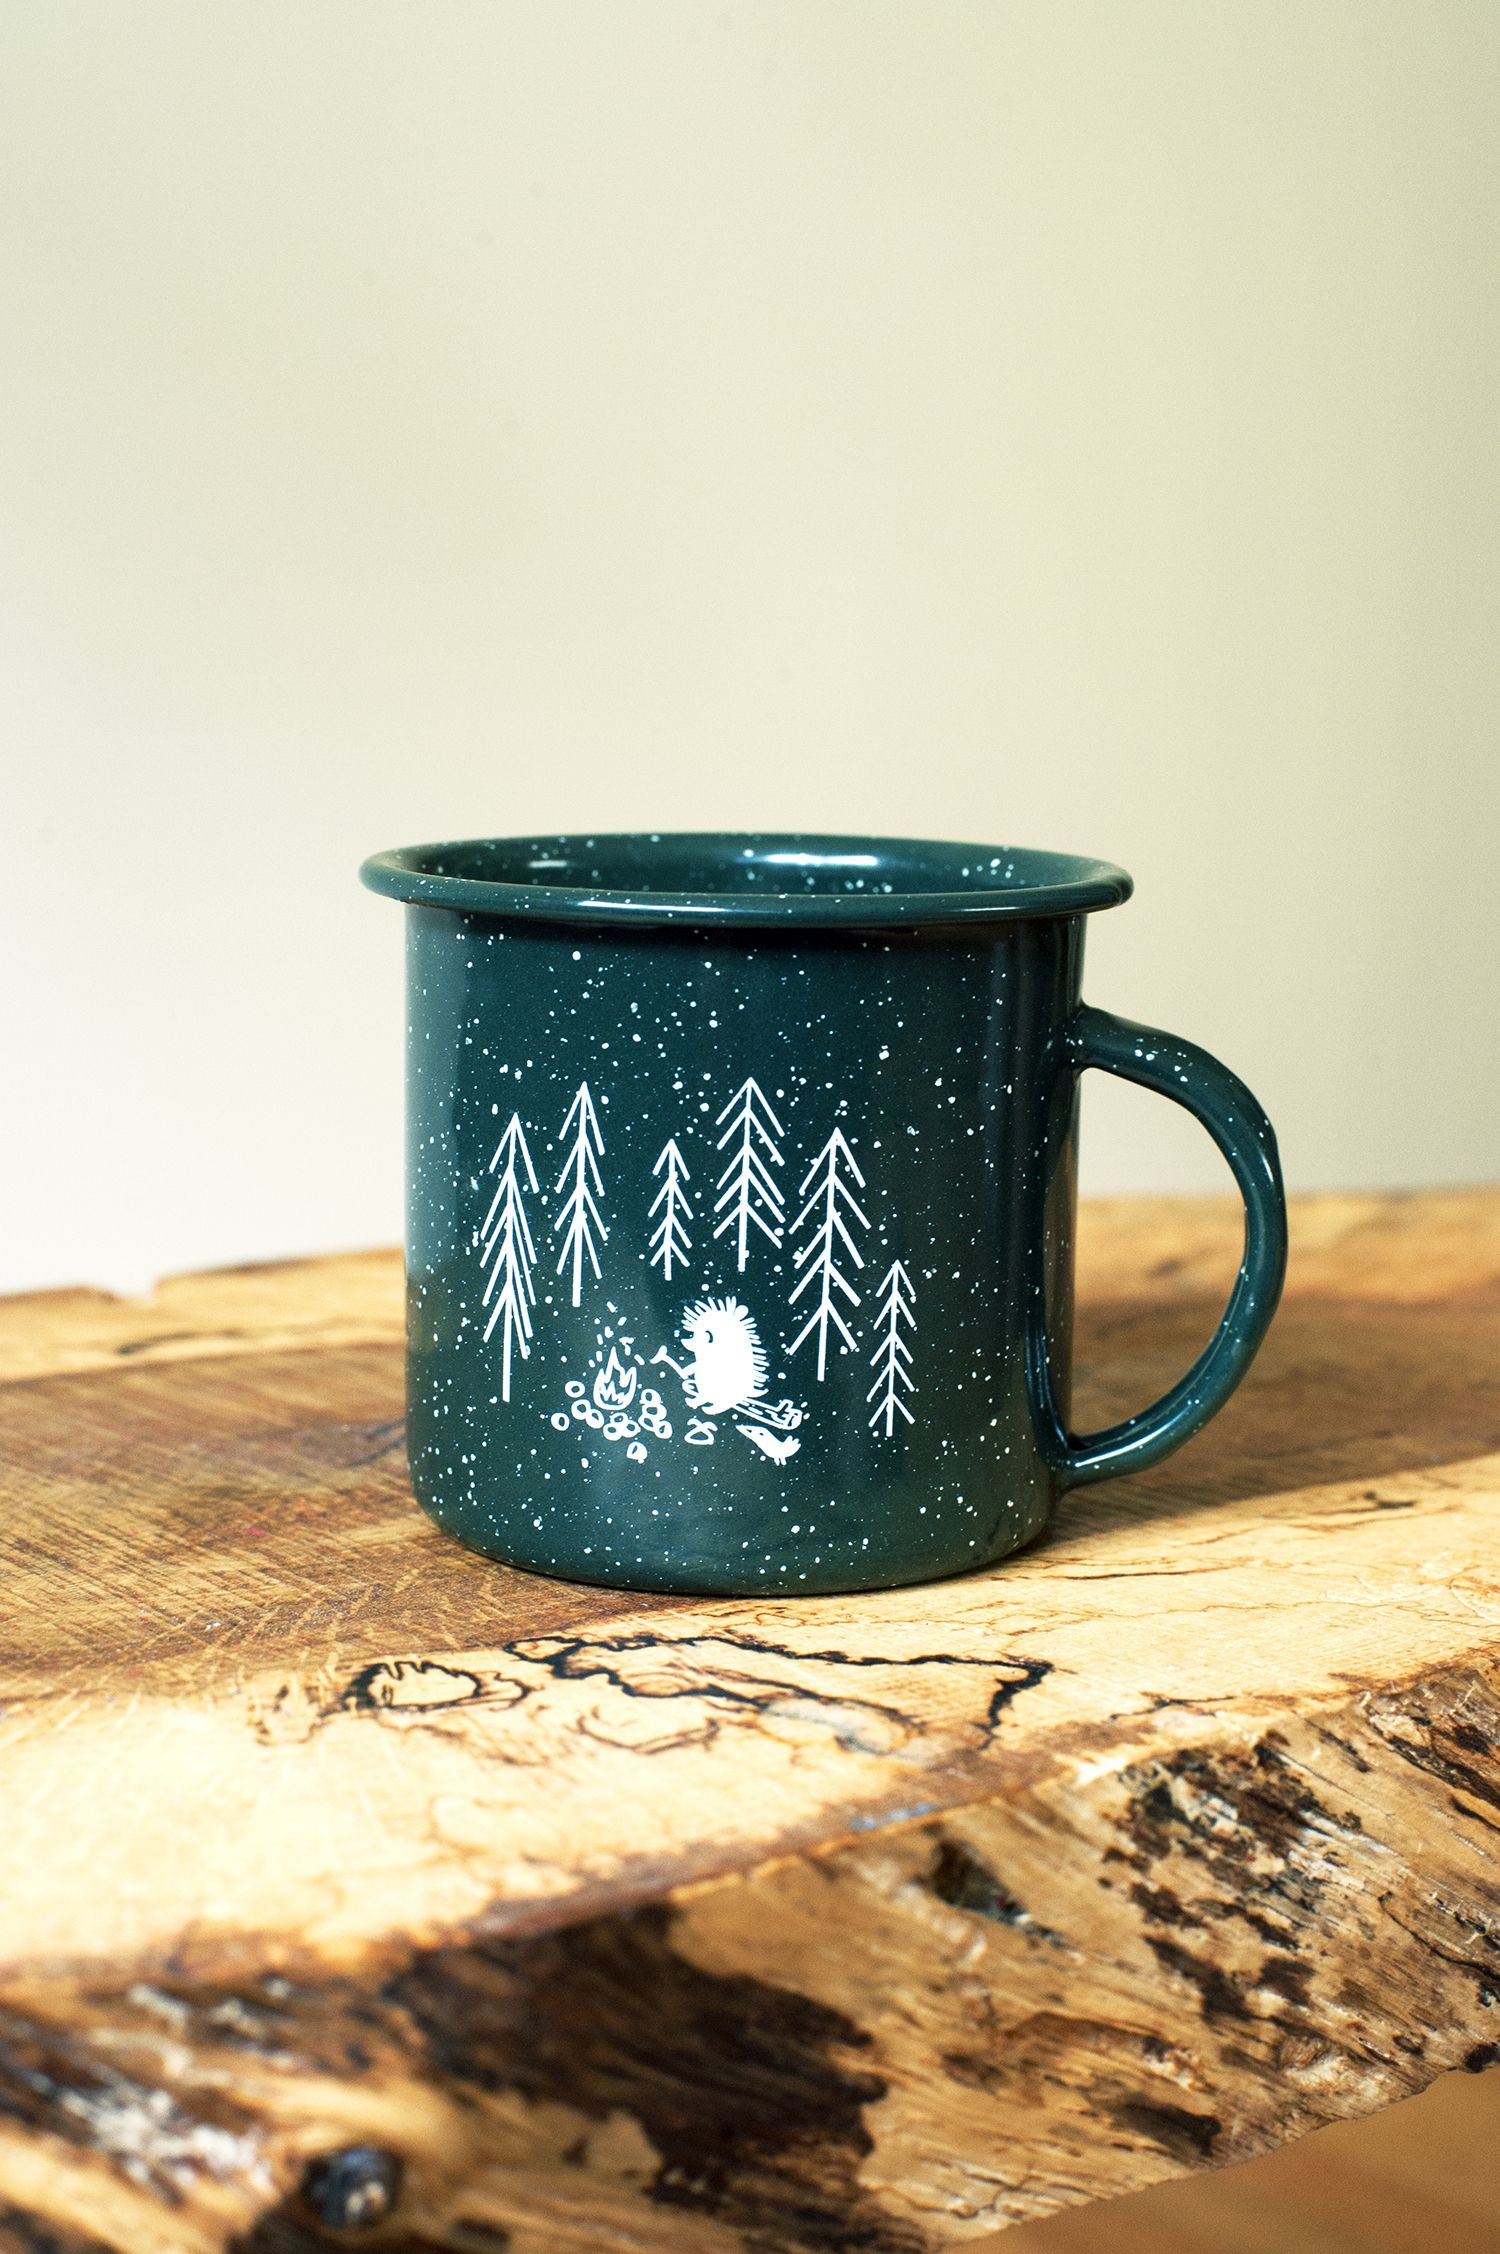 Forest & Waves's Green Pine Mug Candle does double duty. First, burn the fresh-scented candle, then use the cup for camping!